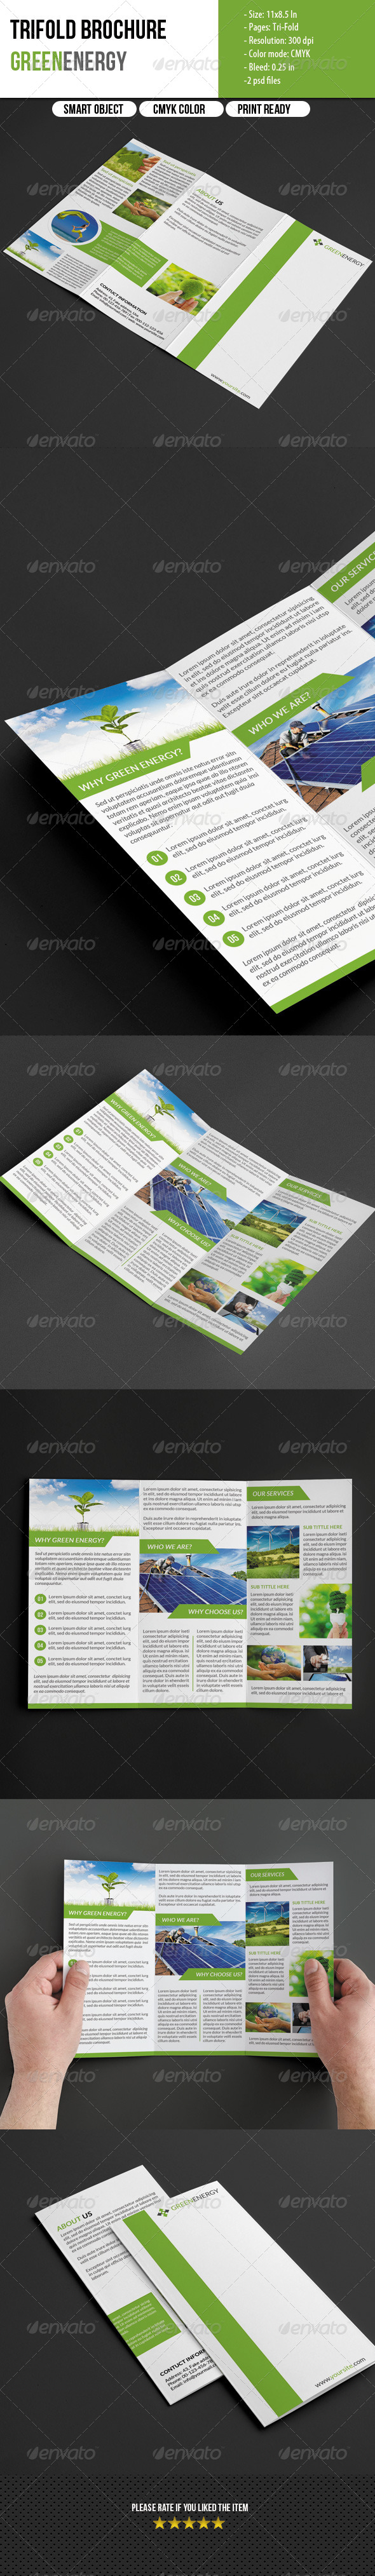 GraphicRiver Trifold Brochure for Green Energy 5621474